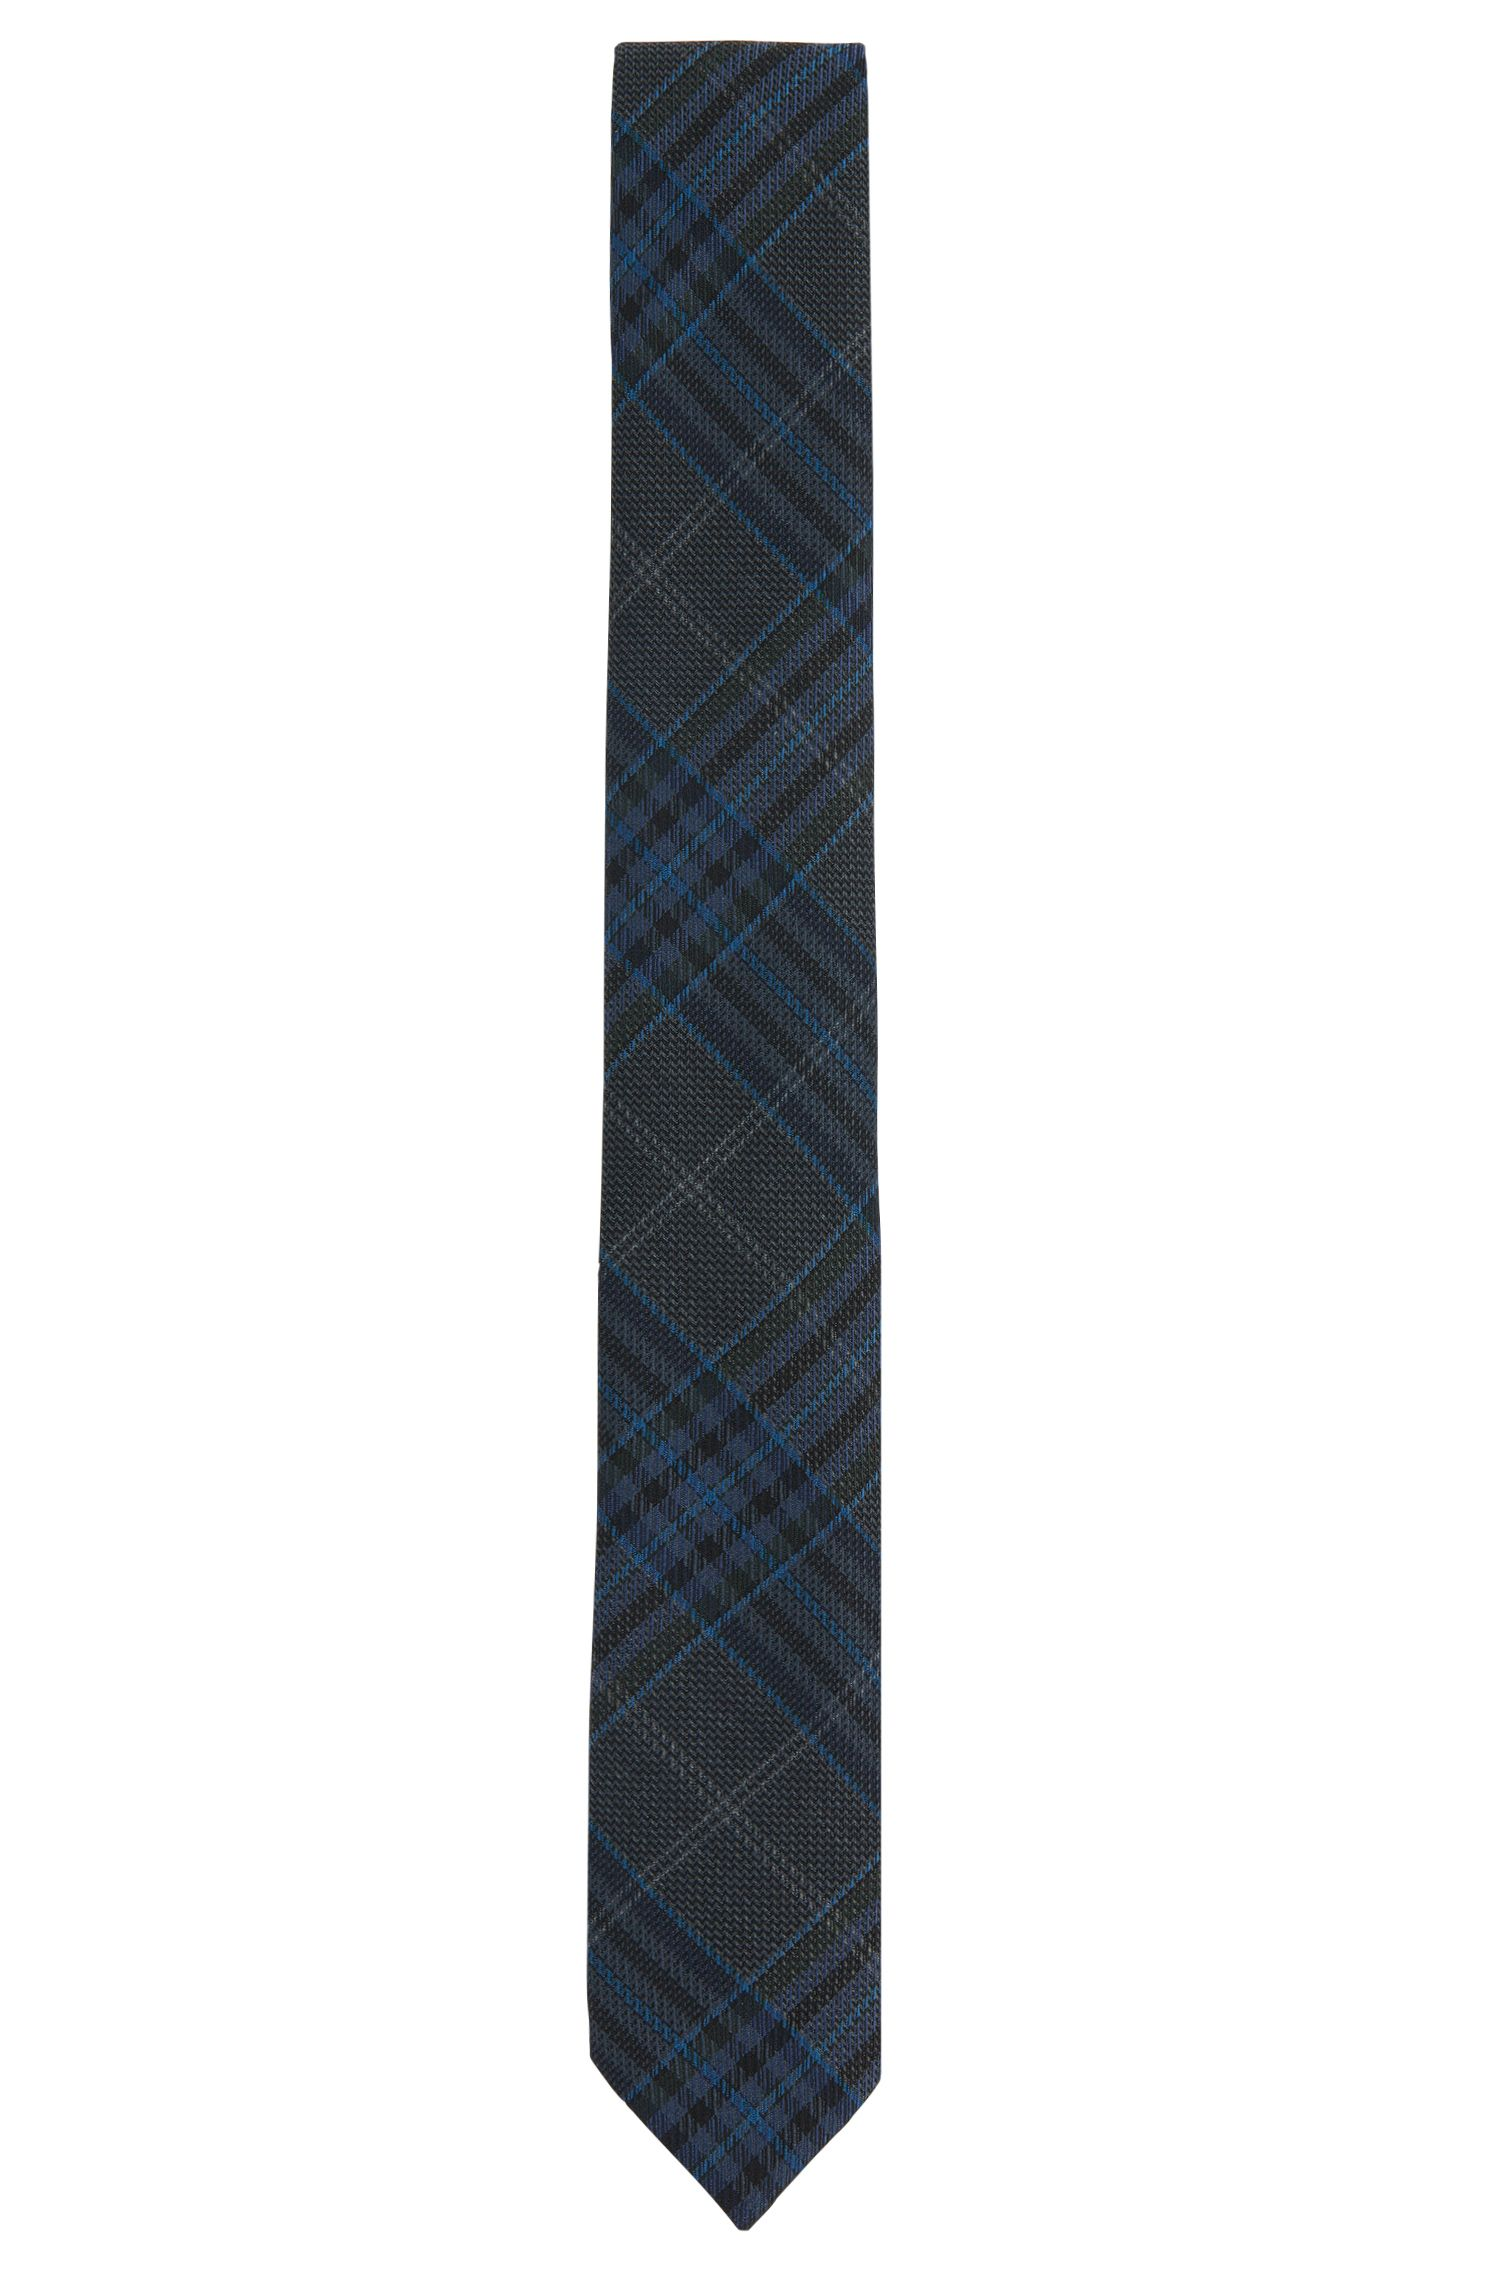 'Tie 6 cm' | Slim, Virgin Wool Plaid Tie